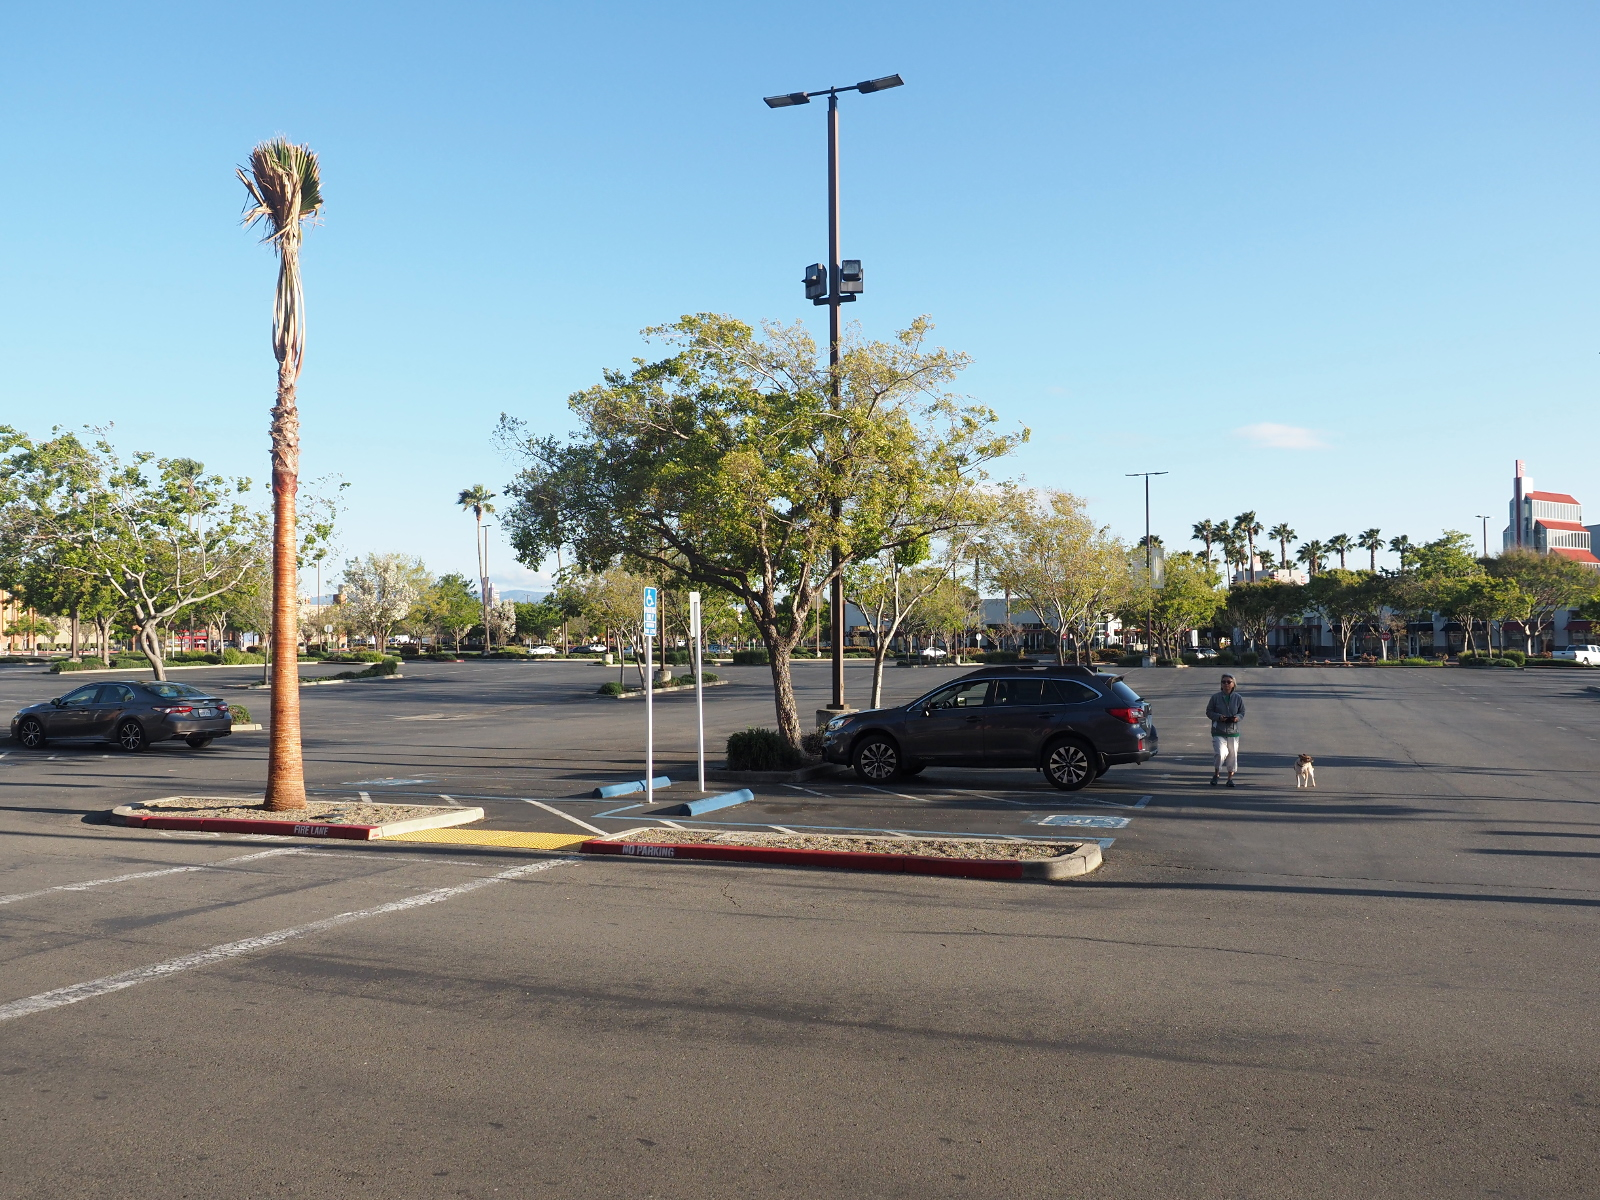 Deserted parking lot at a shopping center